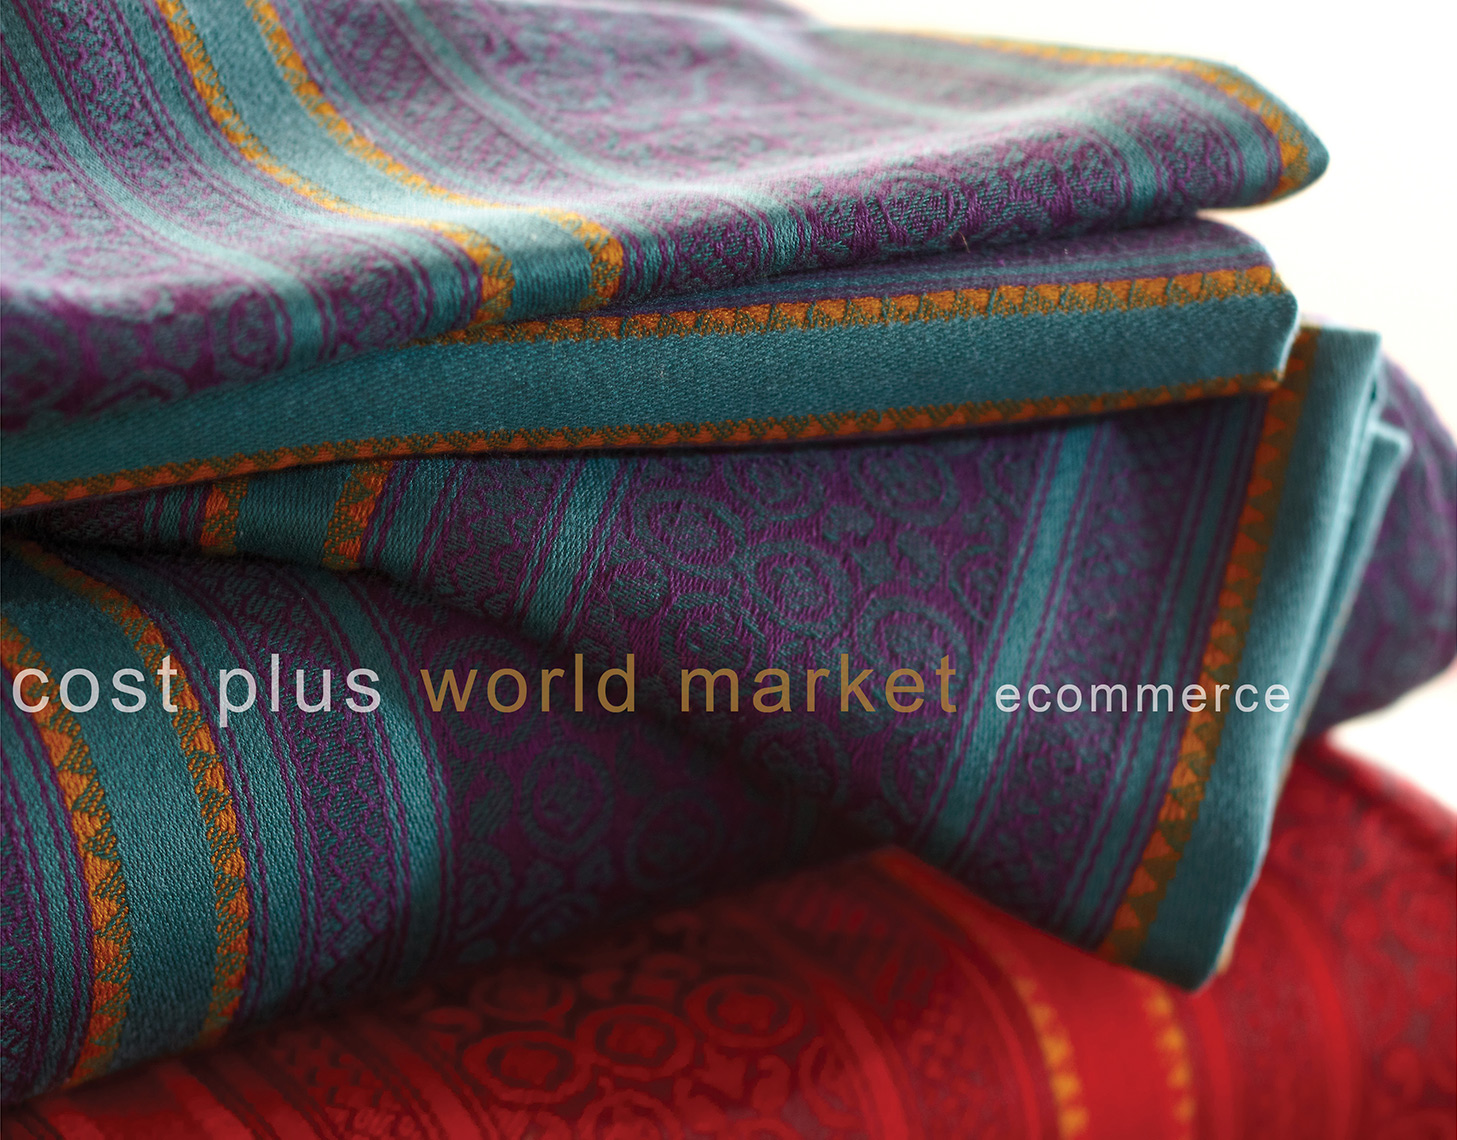 Stack of Textiles for Cost Plus World Market